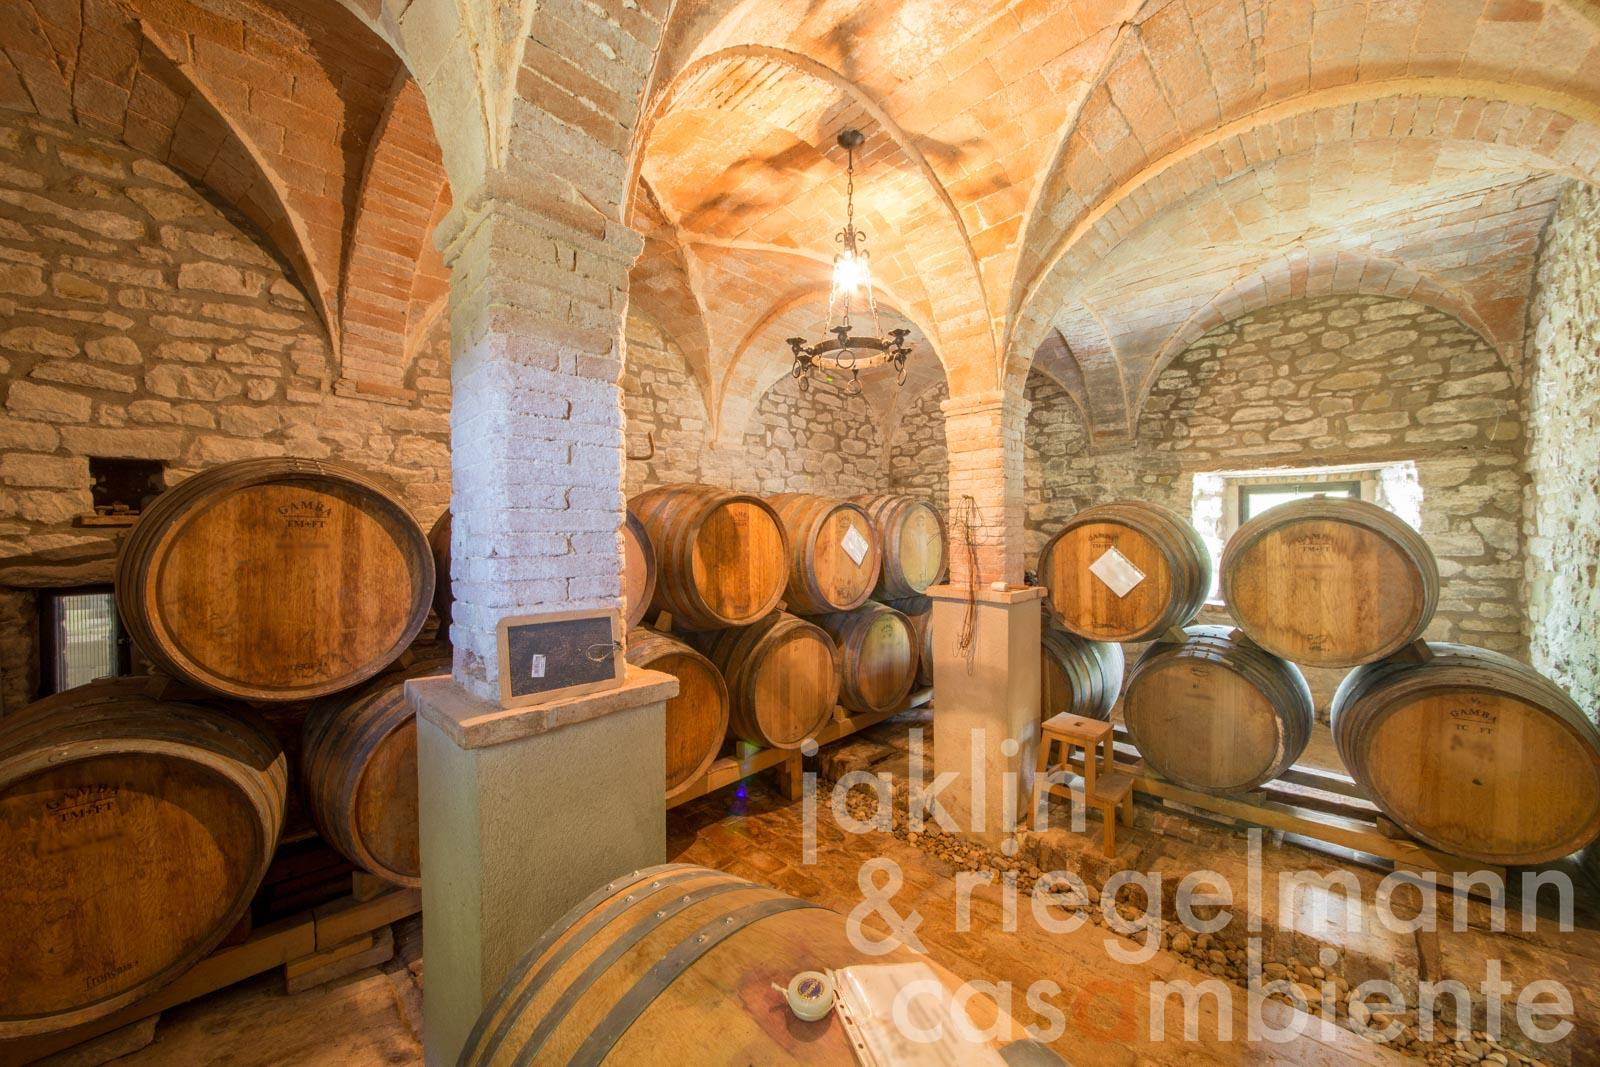 For sale in Emilia Romagna, Italy, a fine wine producer of award-winning Sangiovese wines